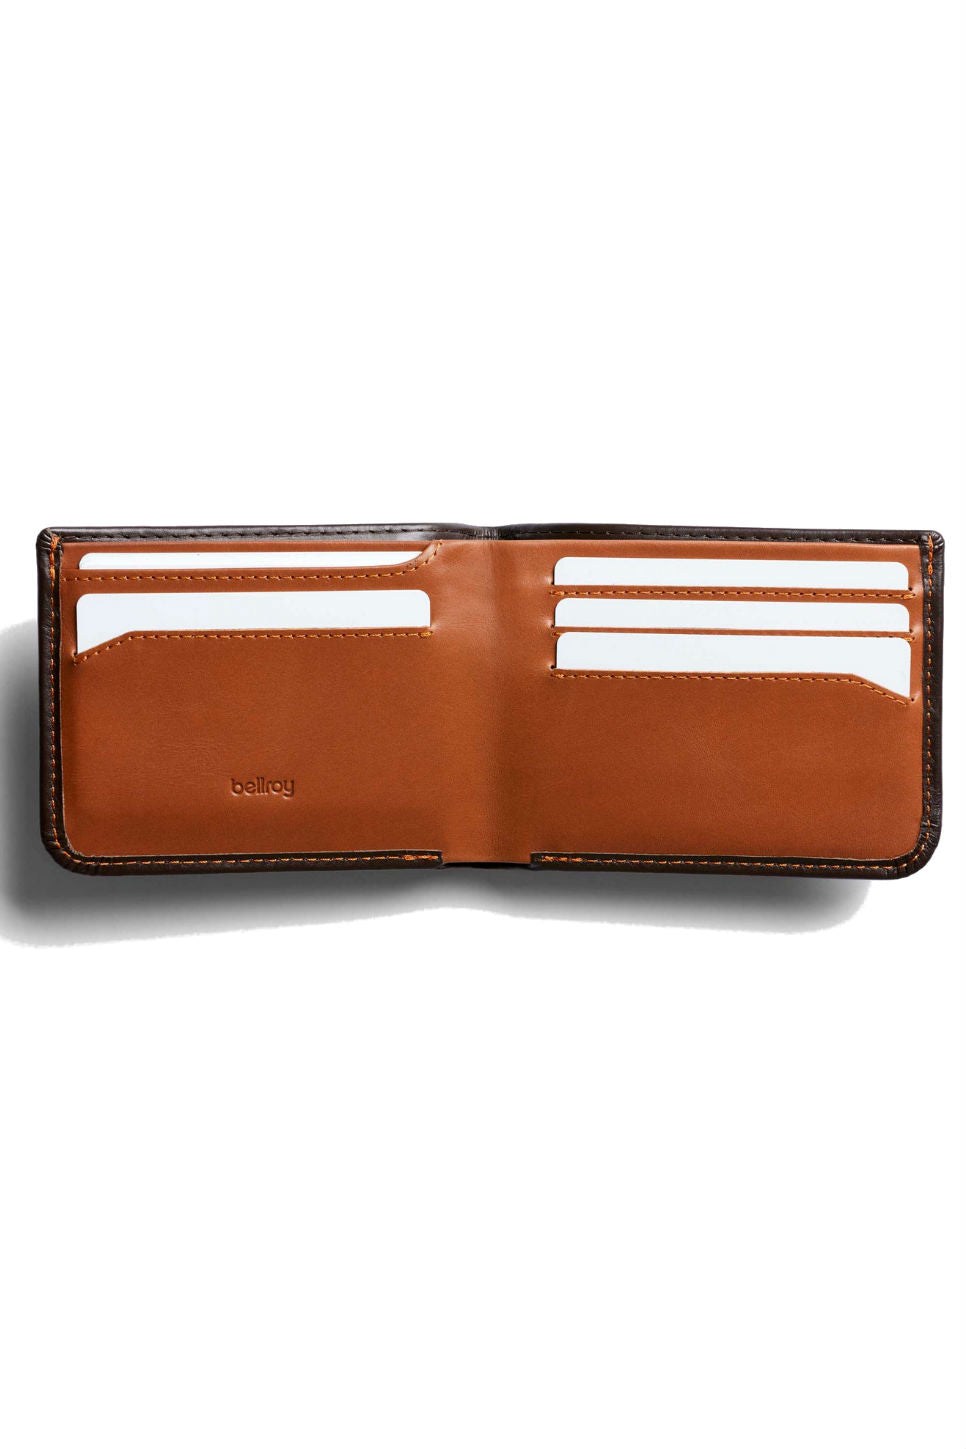 Bellroy - Hide & Seek Wallet - Java - Inside